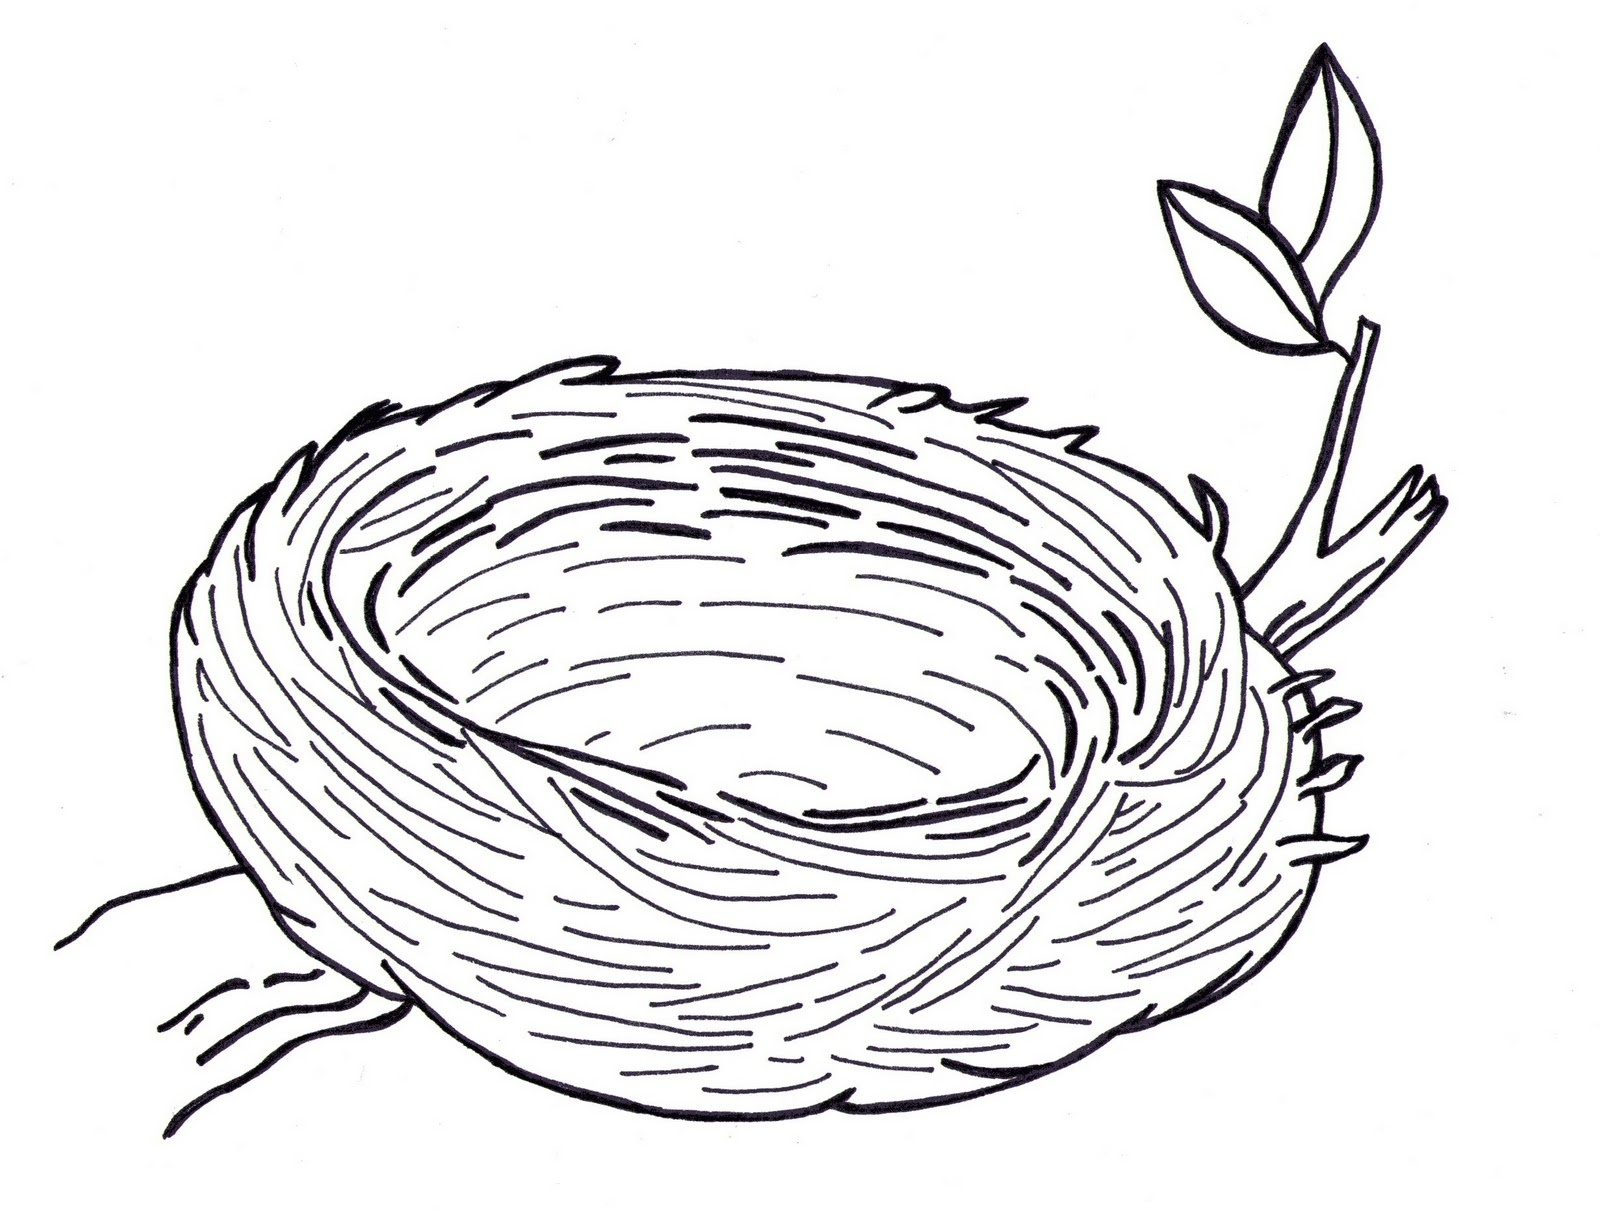 Bird\'s Nest Clipart Black And White – Pencil And In Color Bird\'s ... clip art transparent